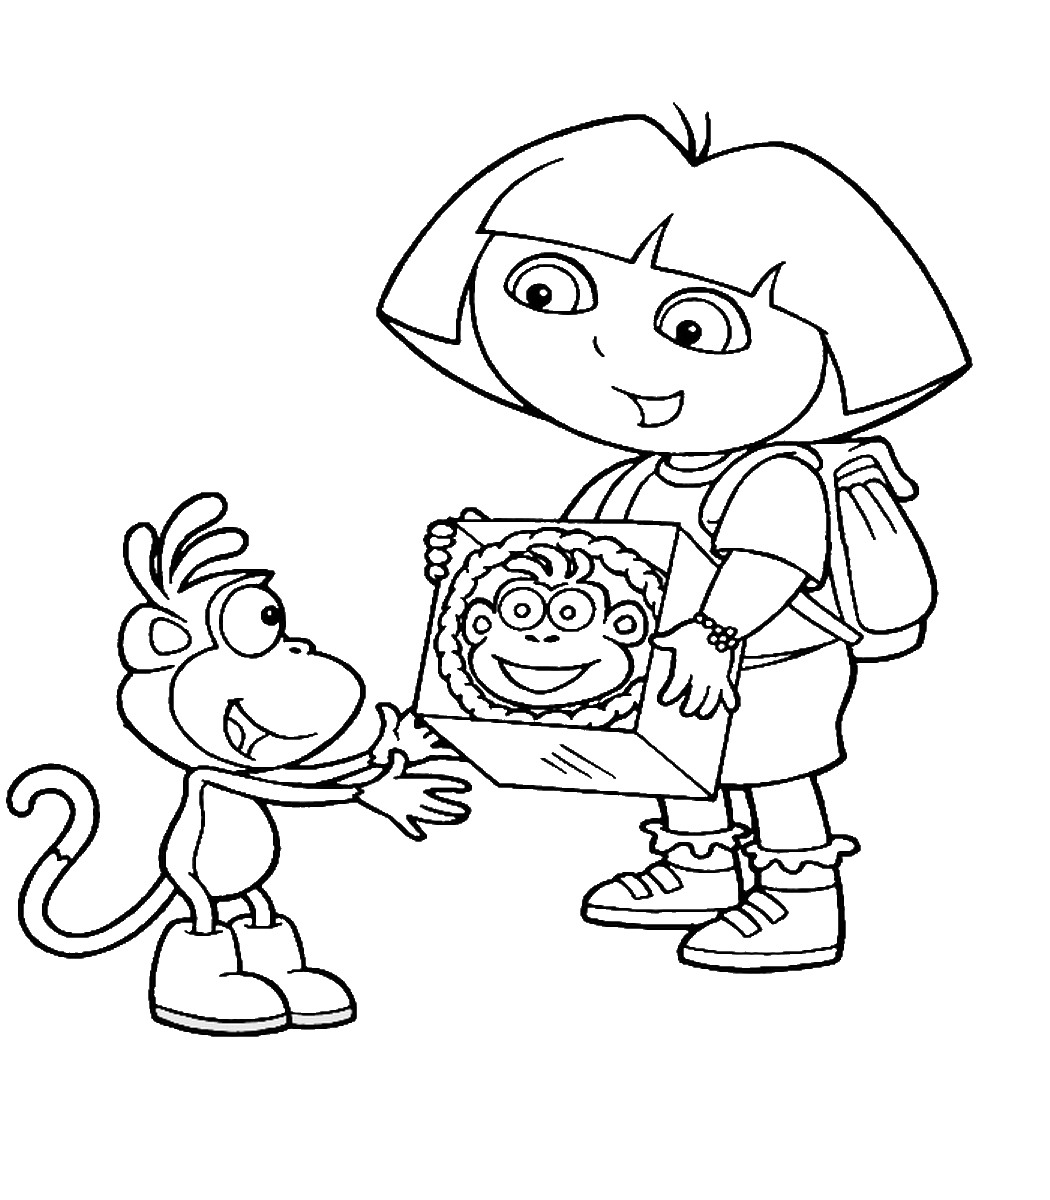 pictures of dora to color dora colouring pictures 2 coloring pages to print pictures dora to of color